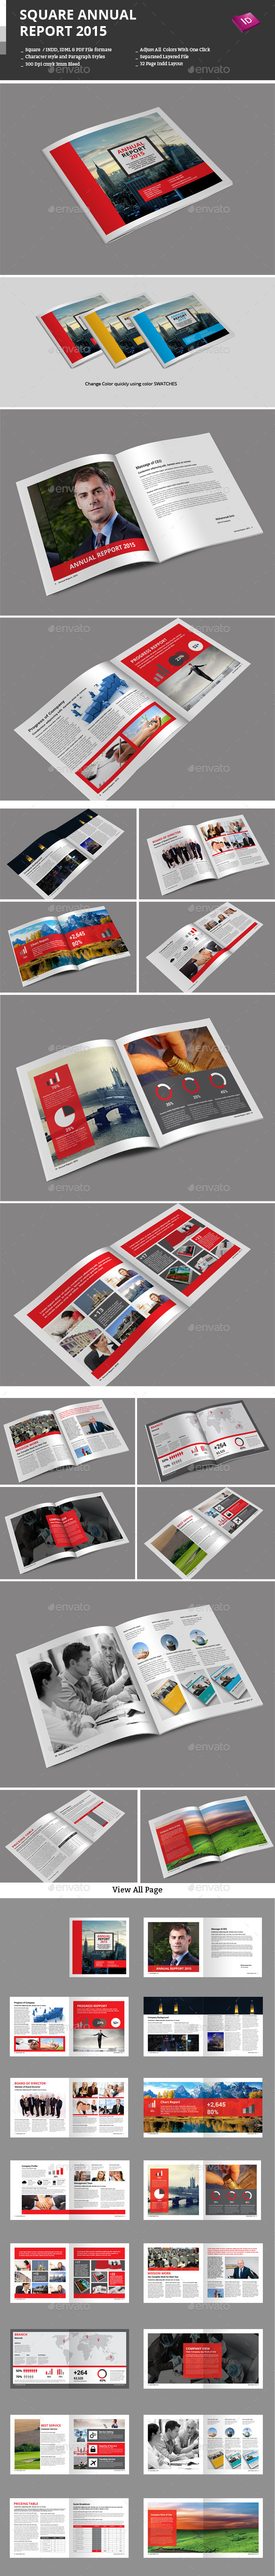 GraphicRiver Square Annual Report 2015 9771998